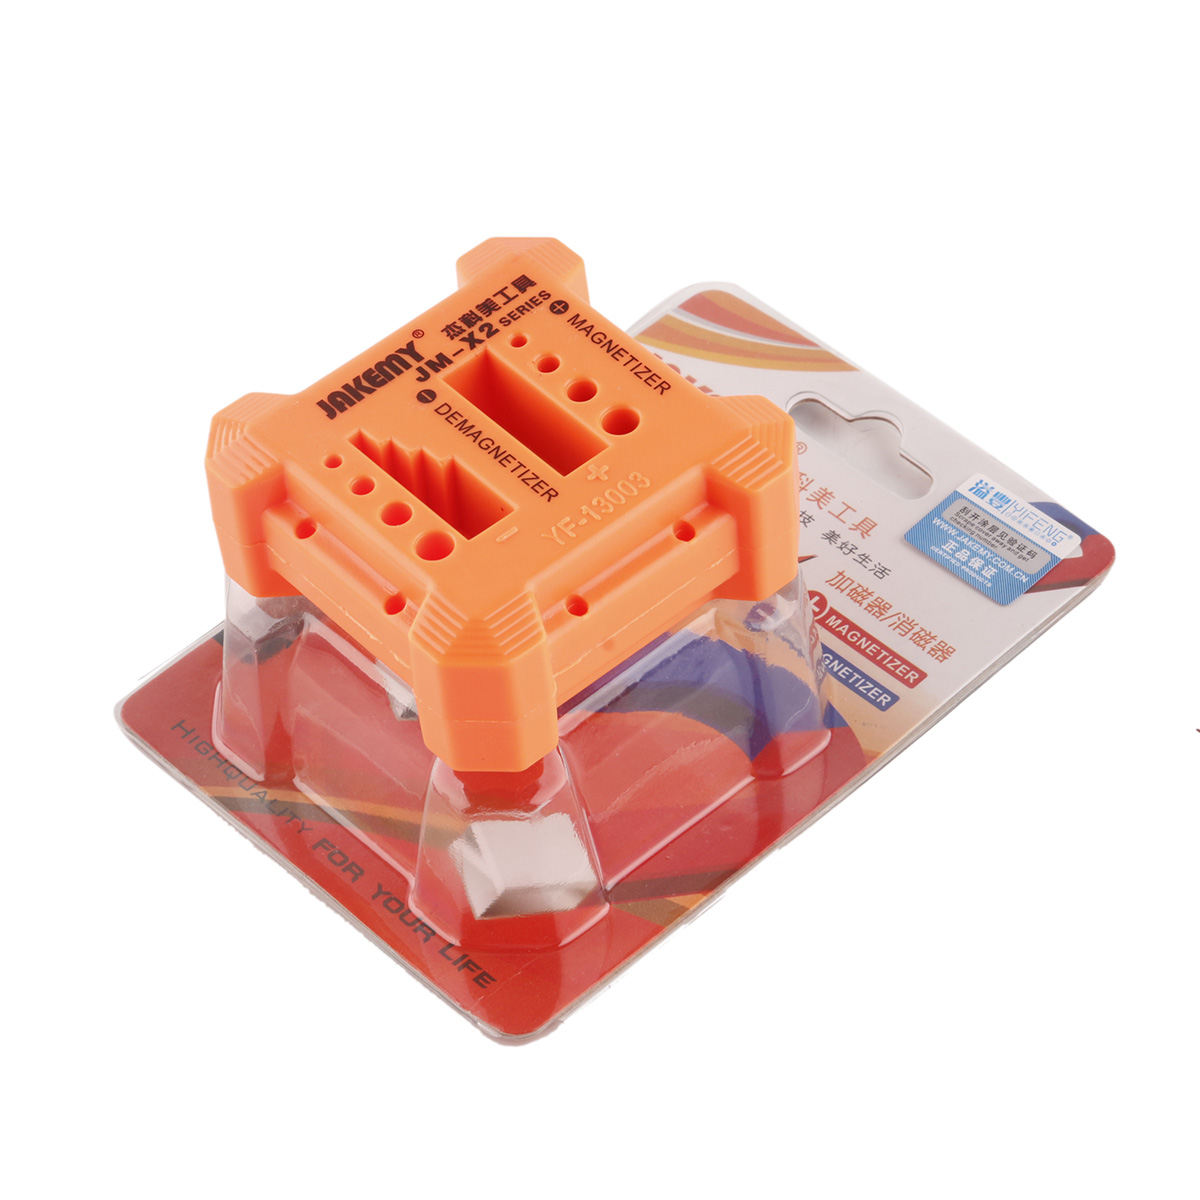 JAKEMY JM X2 Magnetizer Demagnetizer Tool Orange Screwdriver Magnetic Pick Up Tool Screwdriver Degaussin in Power Tool Accessories from Tools